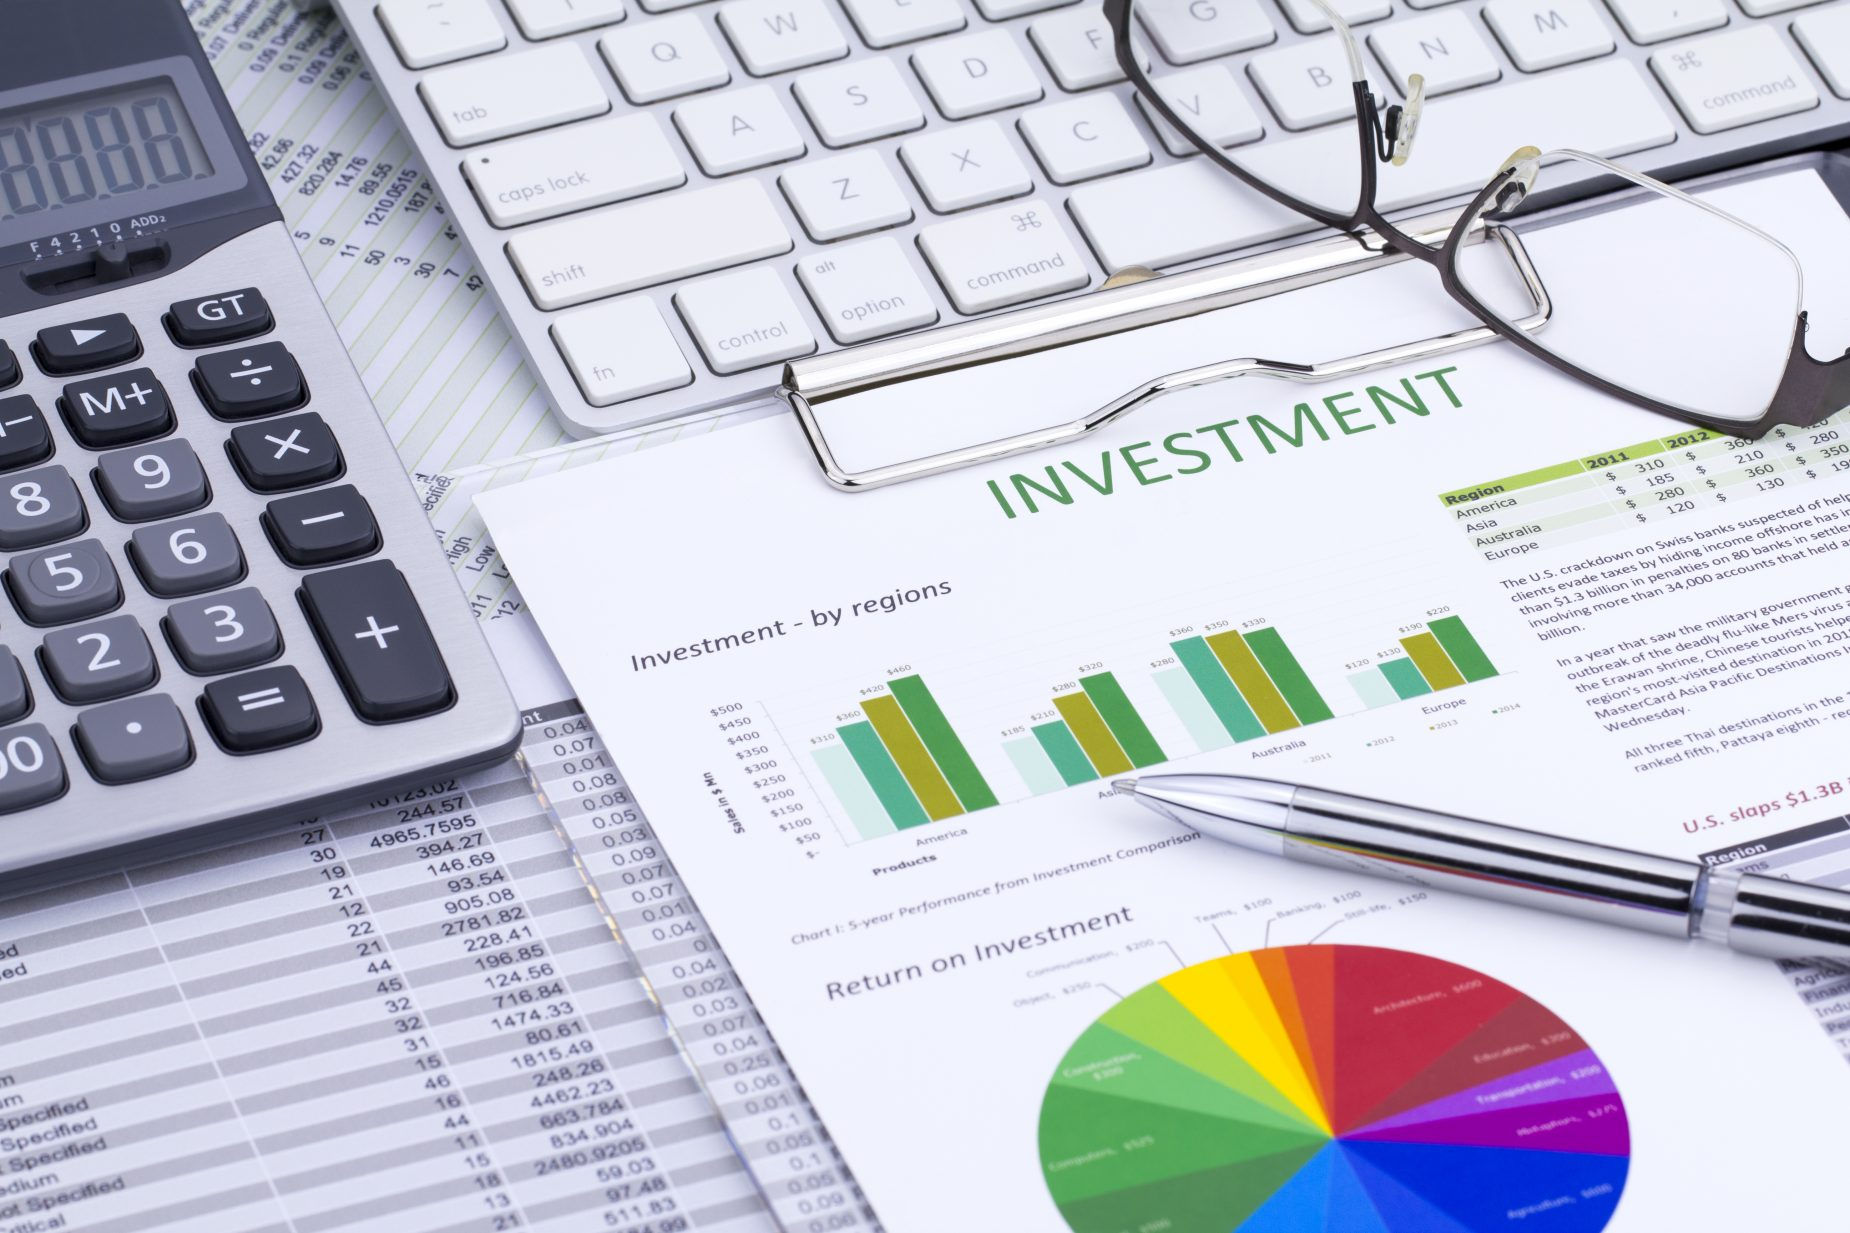 Investment analysis papers with calculator, keyboard and glasses